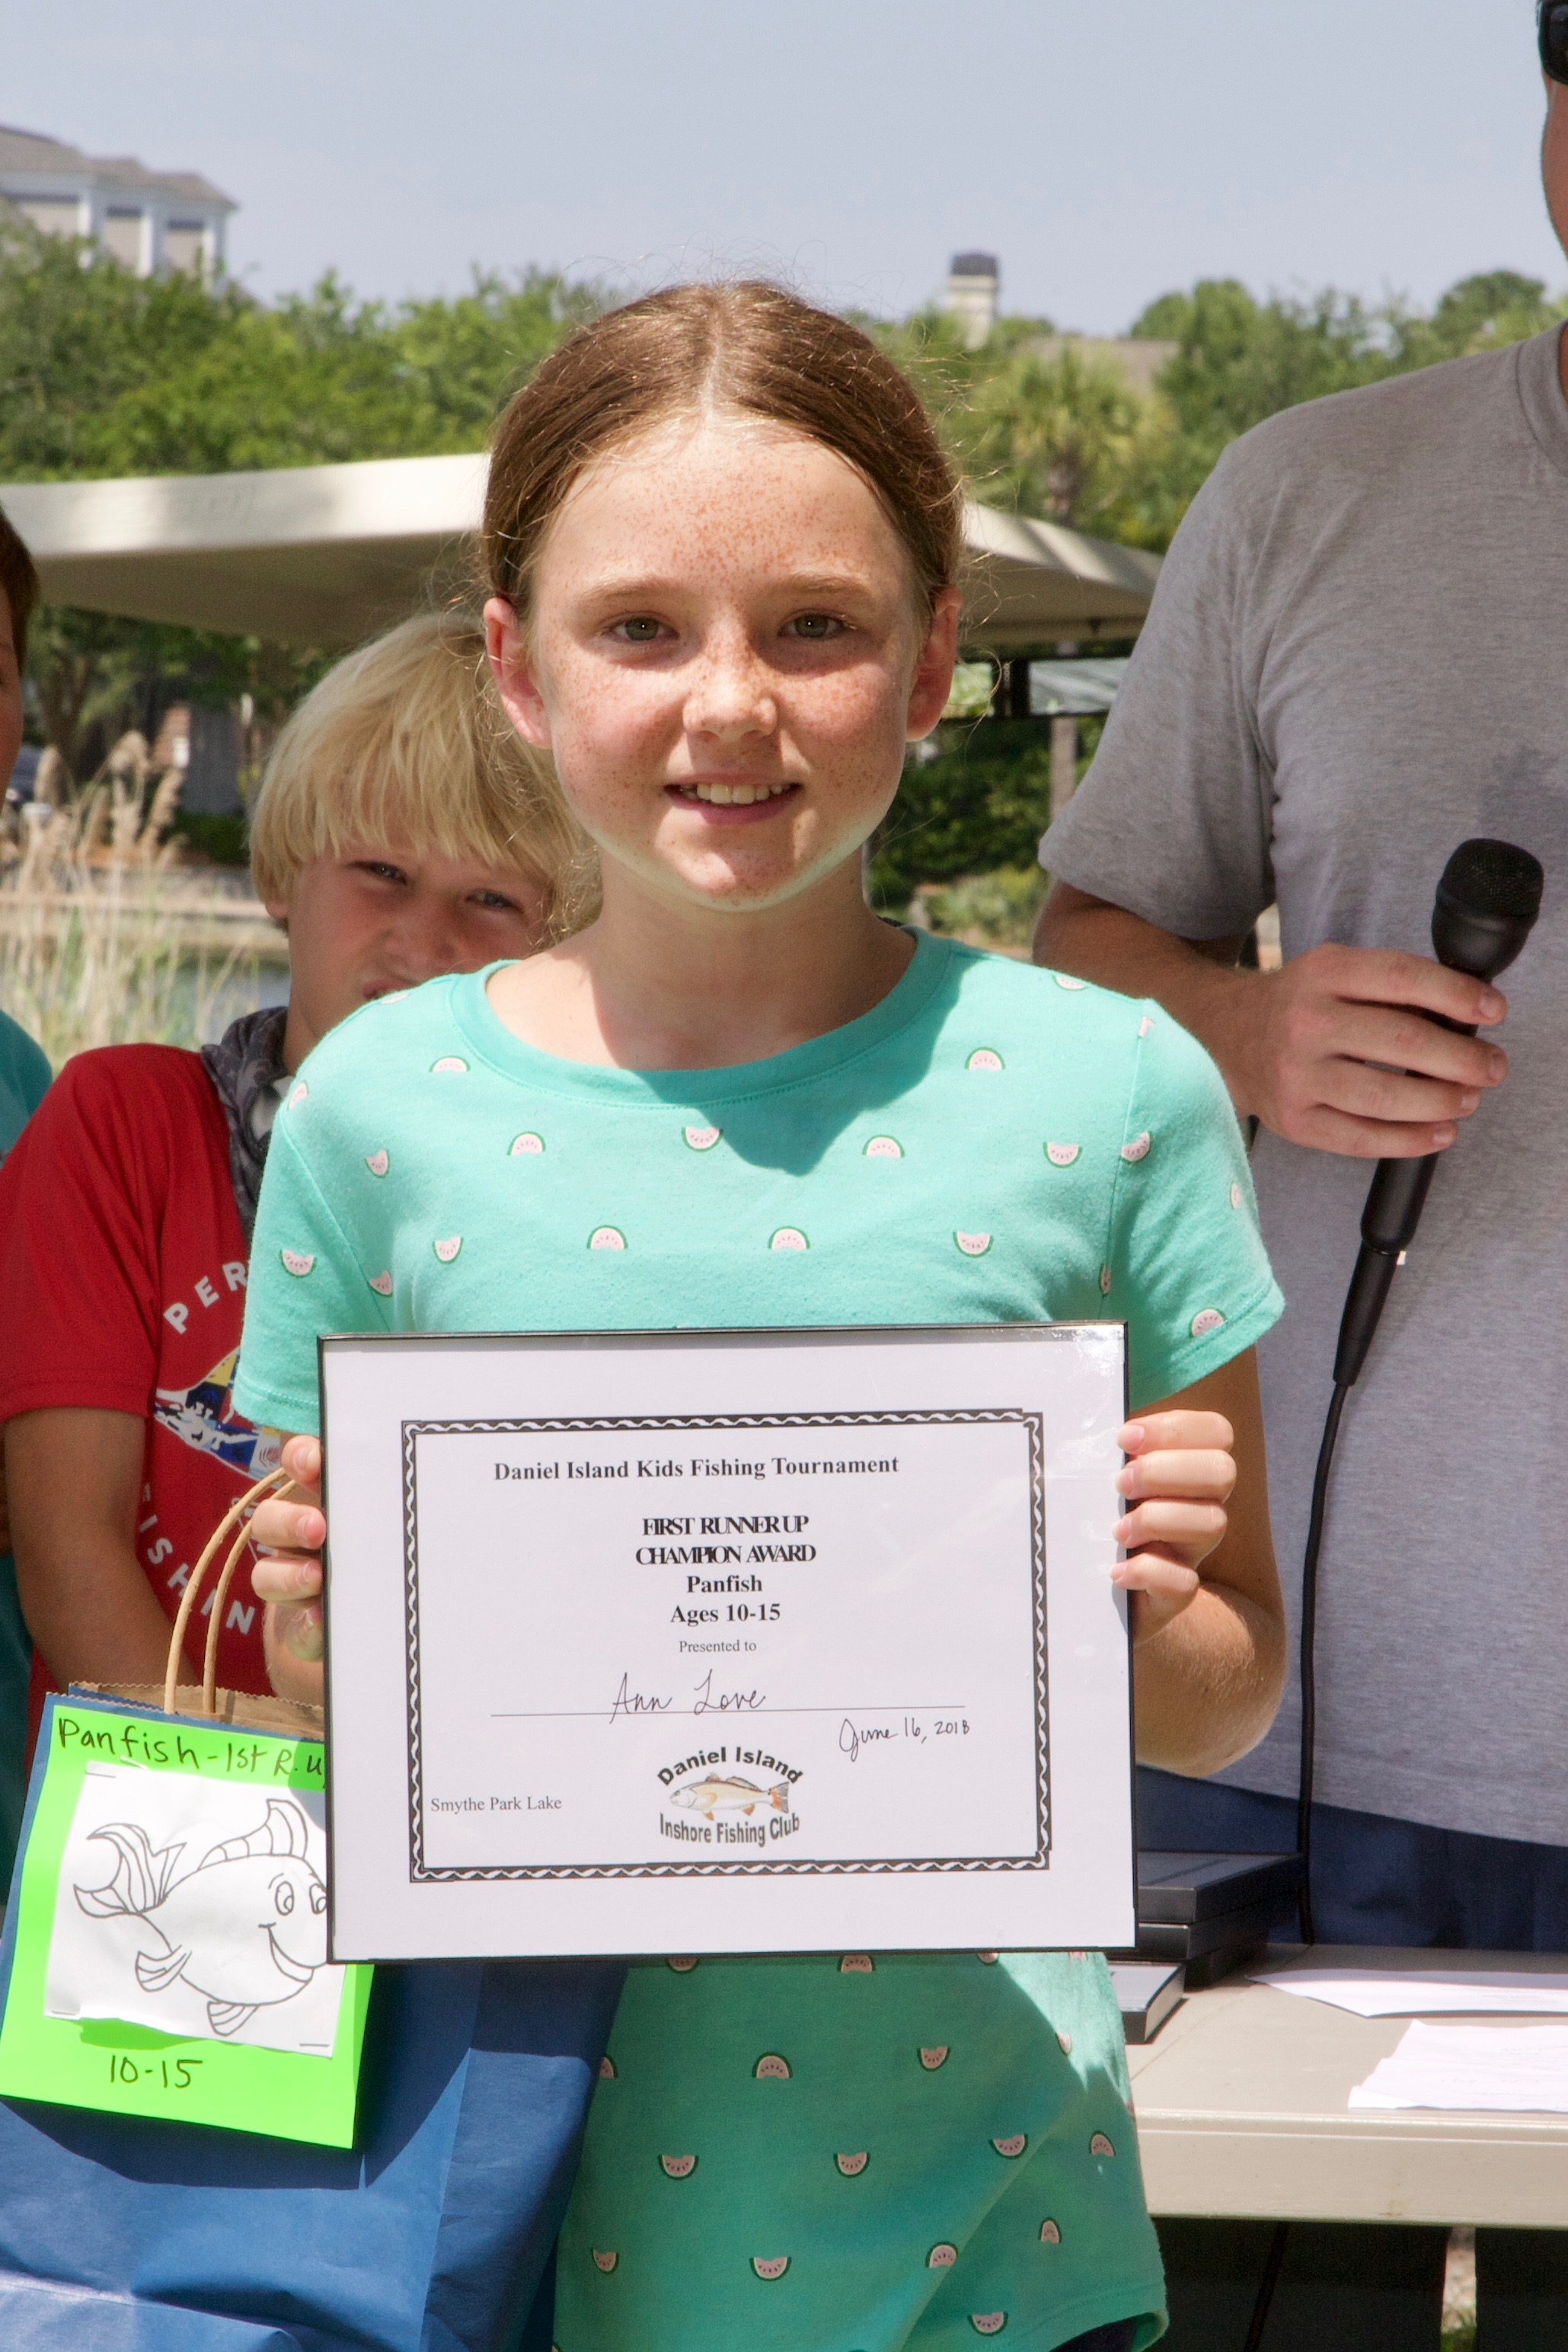 Ann Love – Champion Award, 1st Runner Up,  Panfish, Ages 10-15.